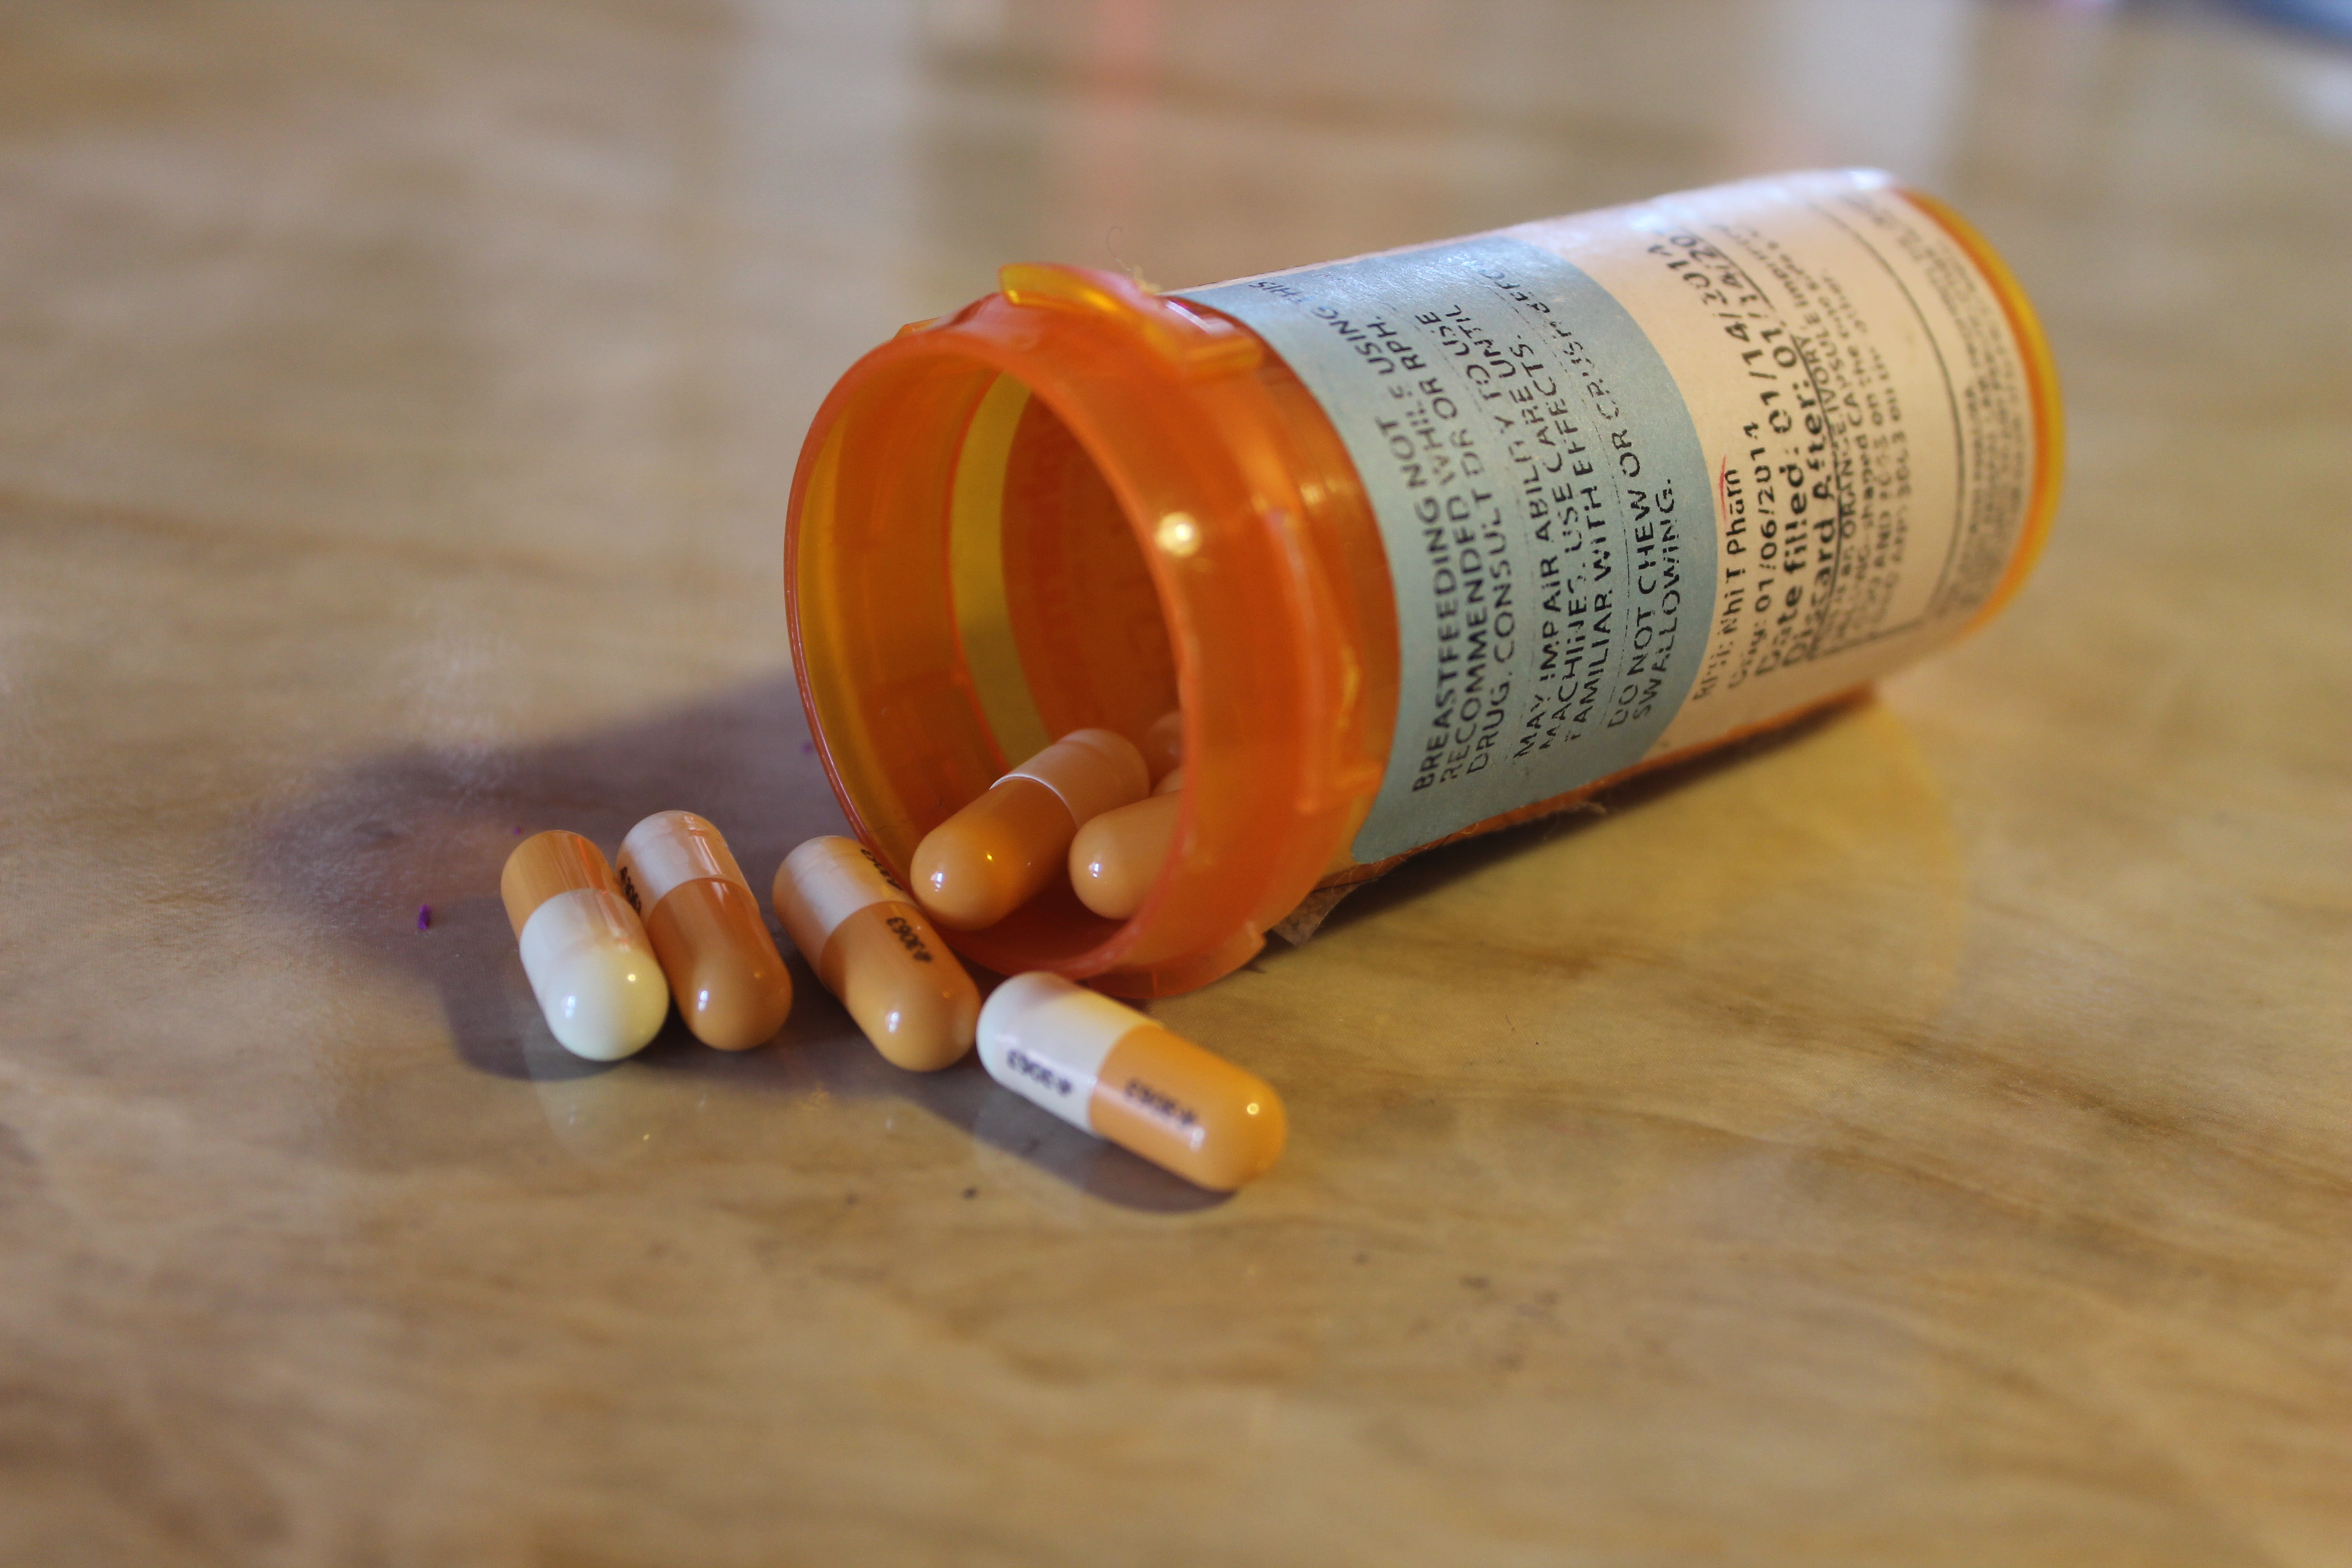 Adderall Not Just A Simple Easy Drug Ou News Bureau